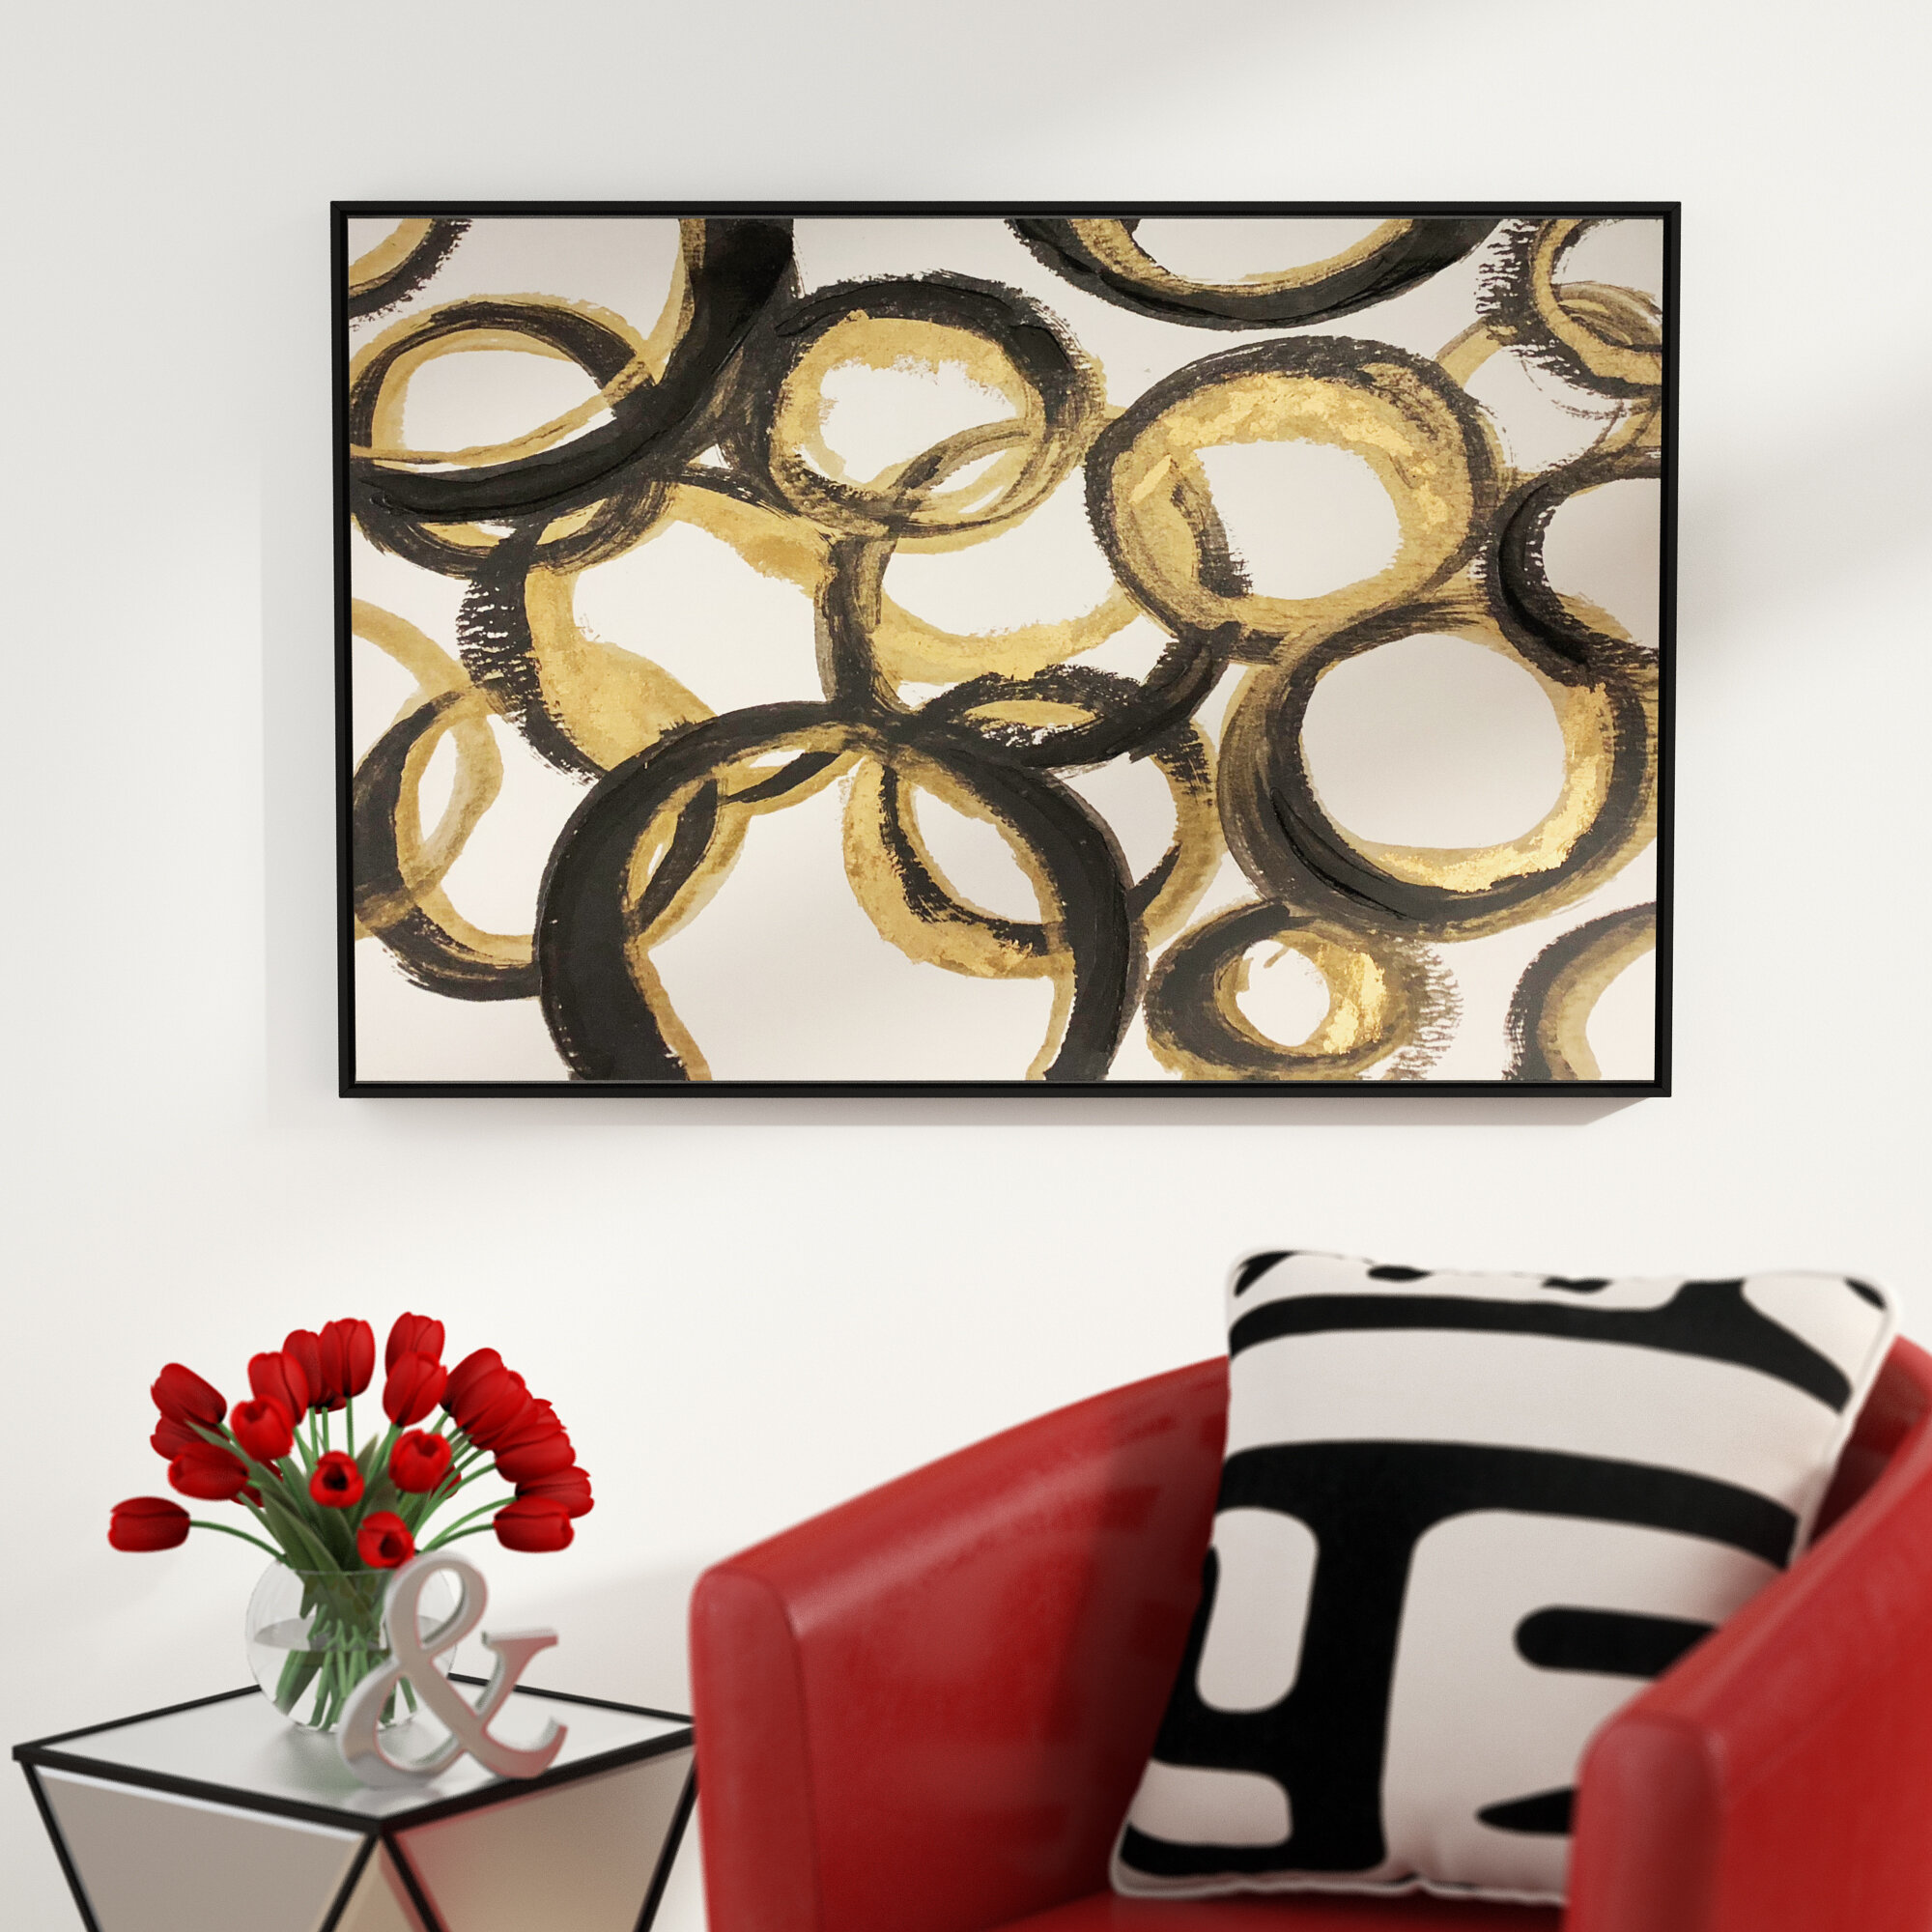 Orren Ellis Black And Gold Abstract Circles Framed Acrylic Painting